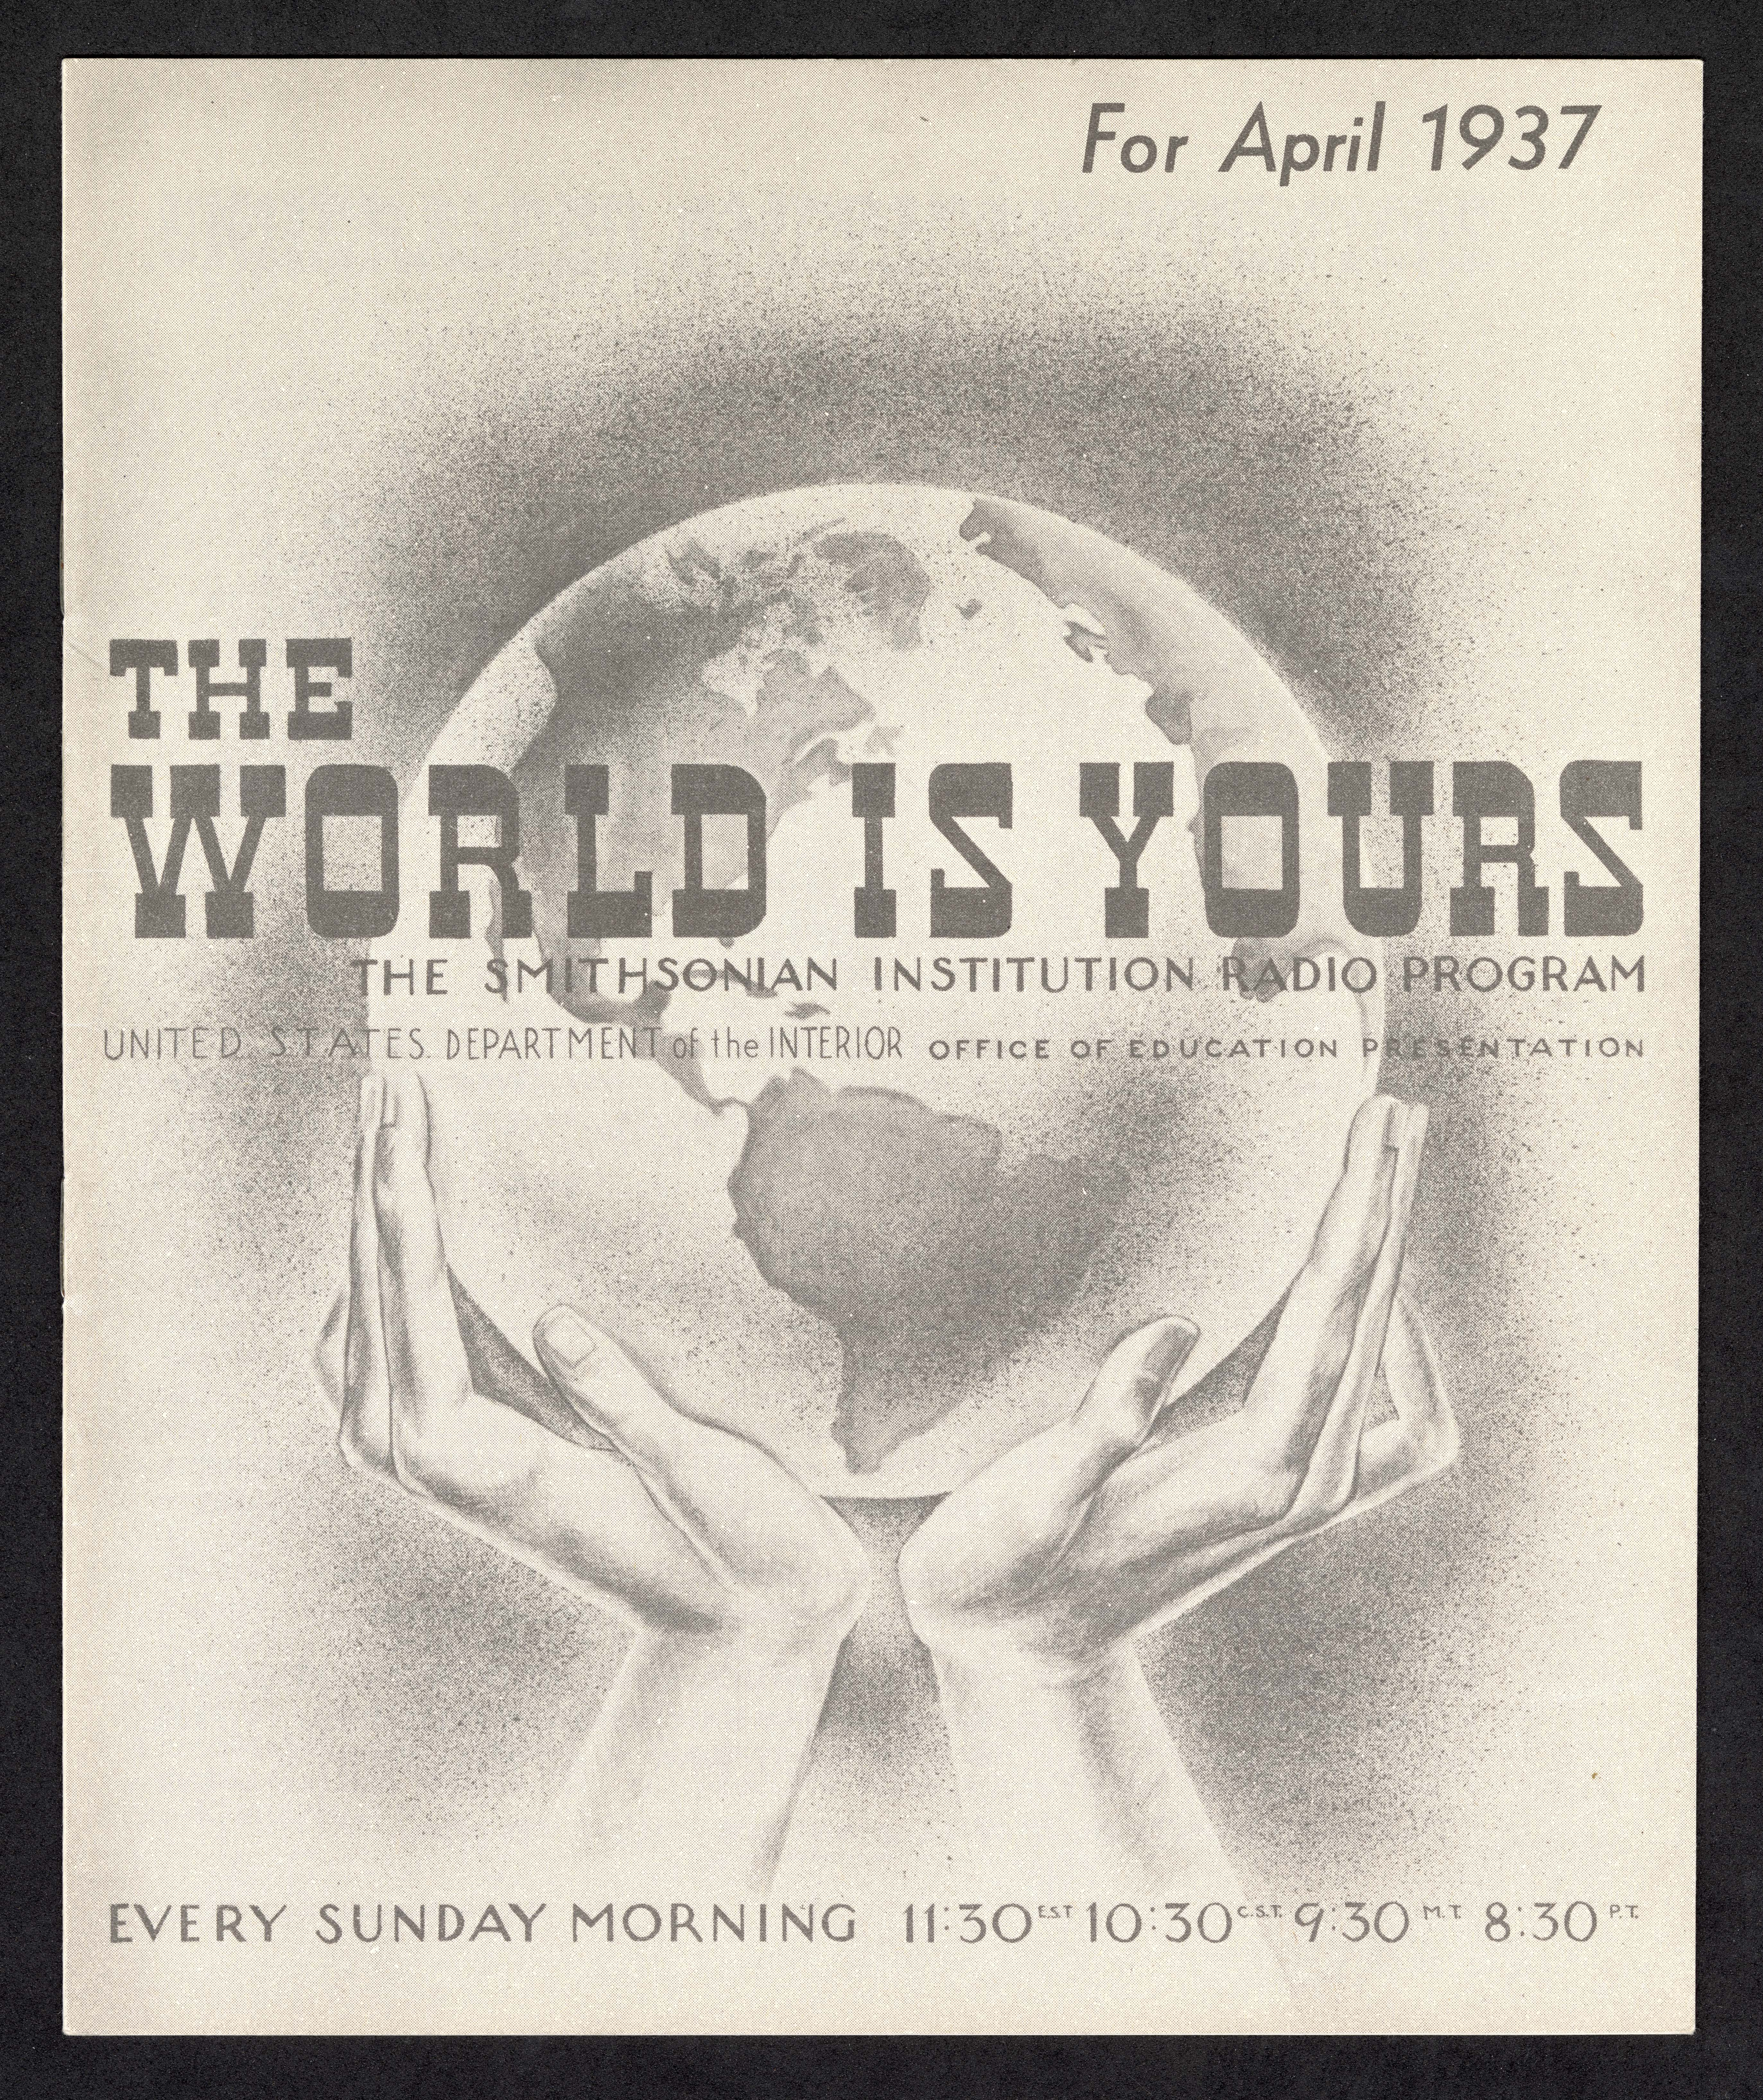 Cover of the World Is Yours April 1937 booklet. A drawing of hands holding up a glove is on the cove